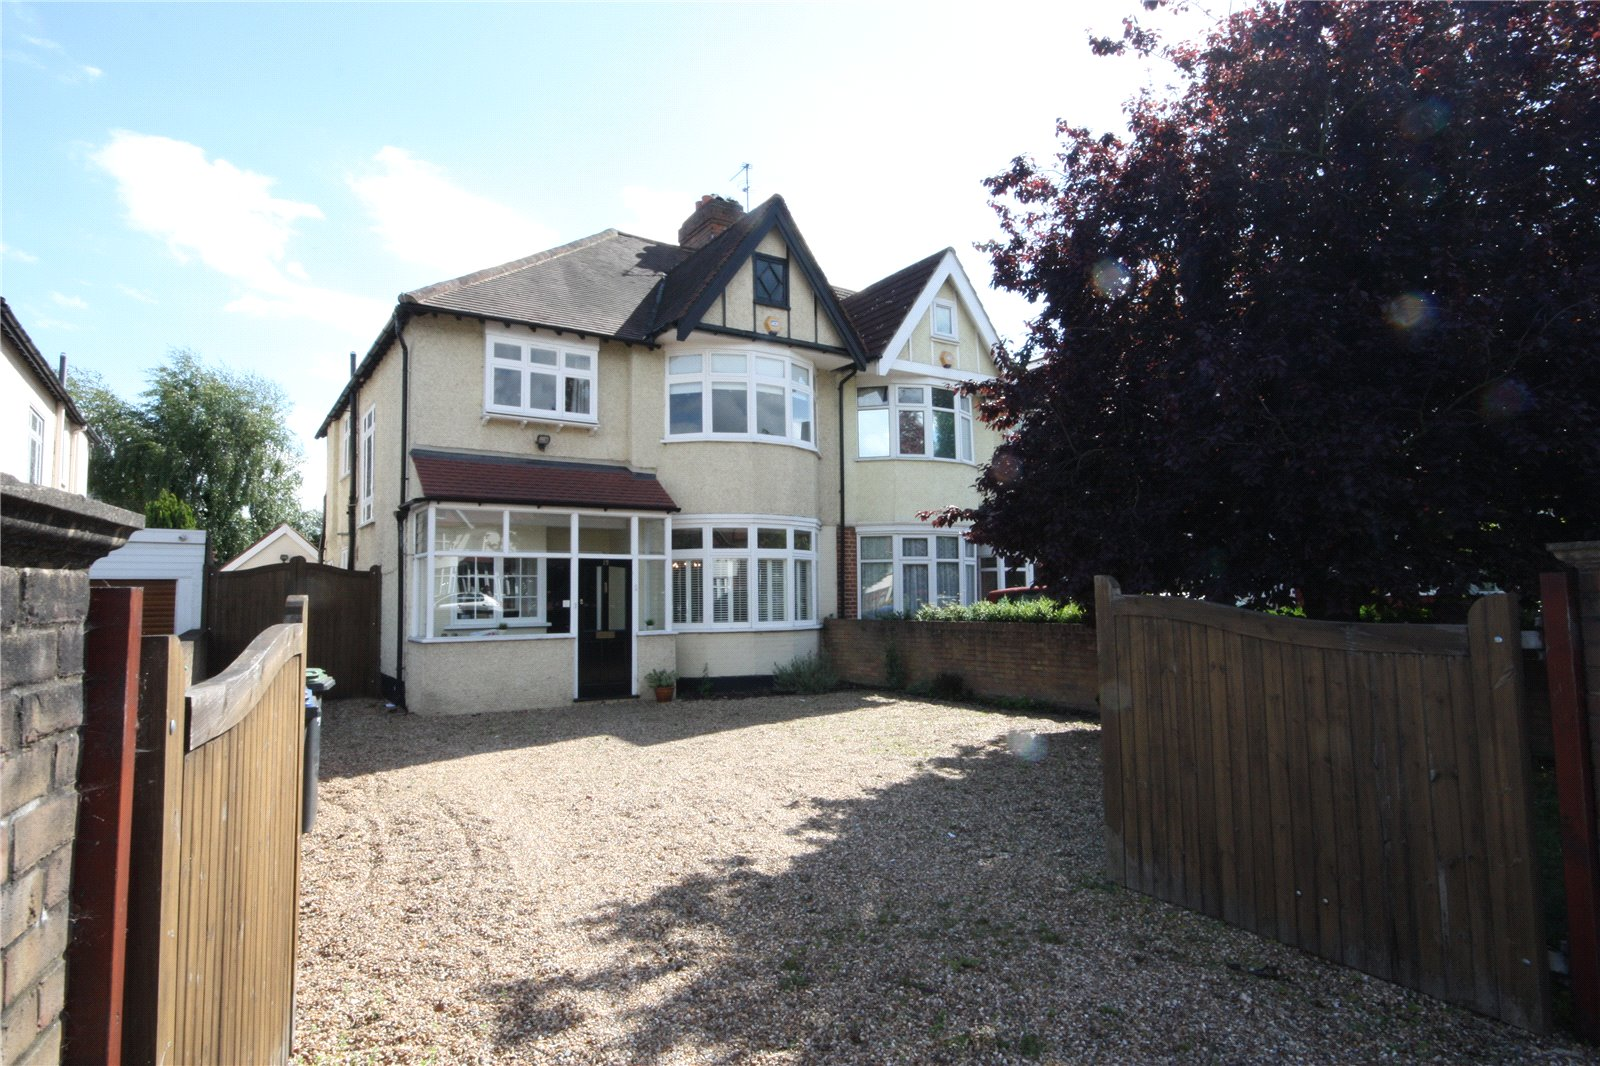 4 Bedrooms Semi Detached House for sale in Ridge Avenue Winchmore Hill London N21